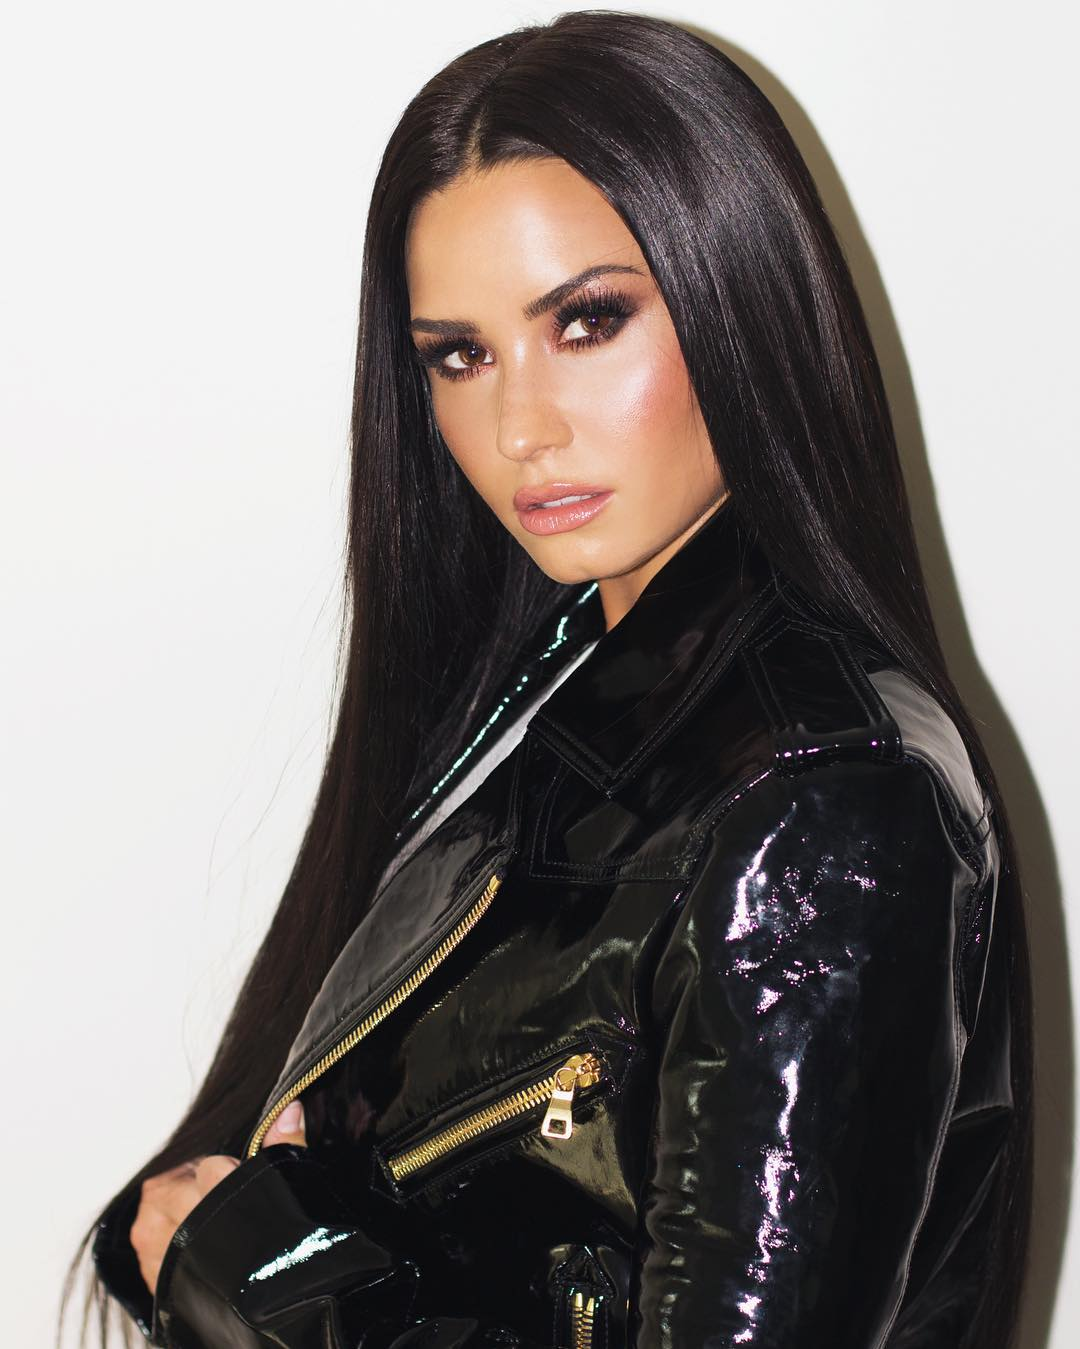 Demi Lovato With Mid Part Sleek Long Hair Wearing Black